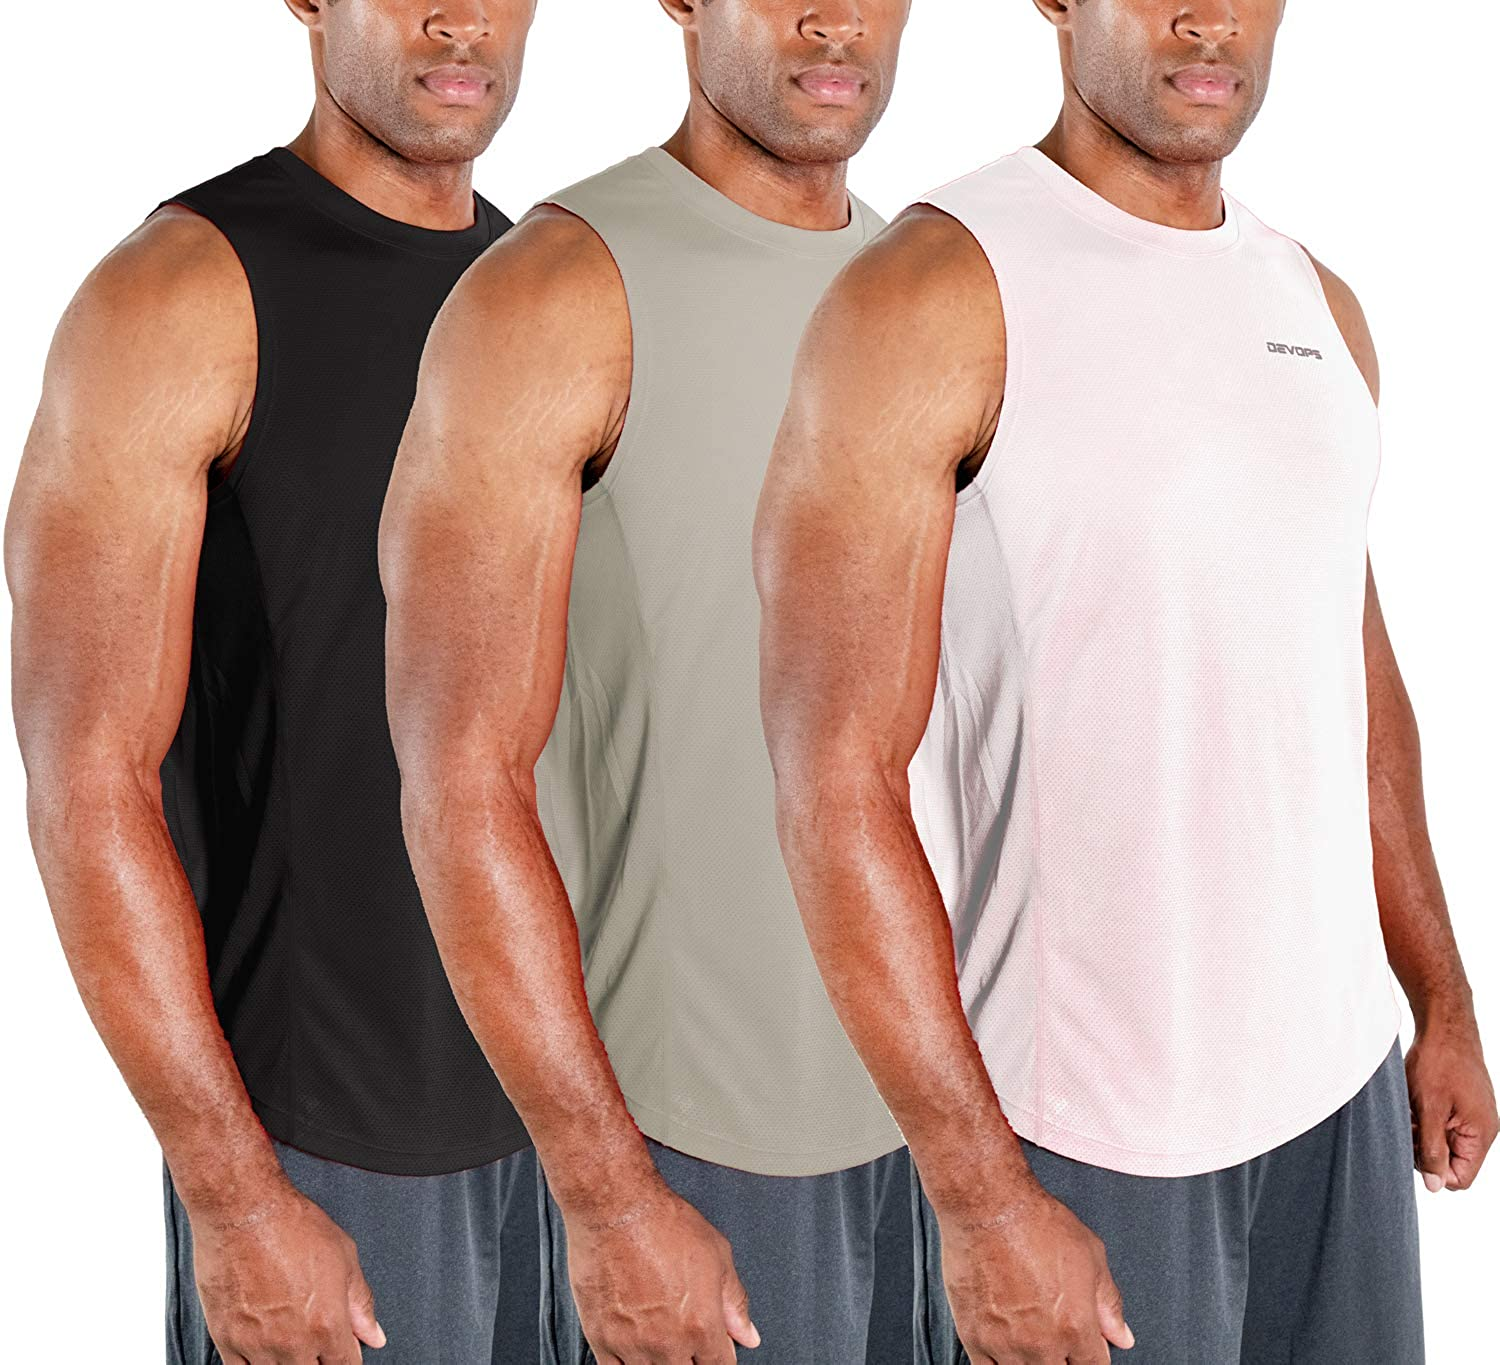 DEVOPS unisex 3 Pack Direct sale of manufacturer Men's Muscle Shirts Dri Gym Fit Sleeveless Workout